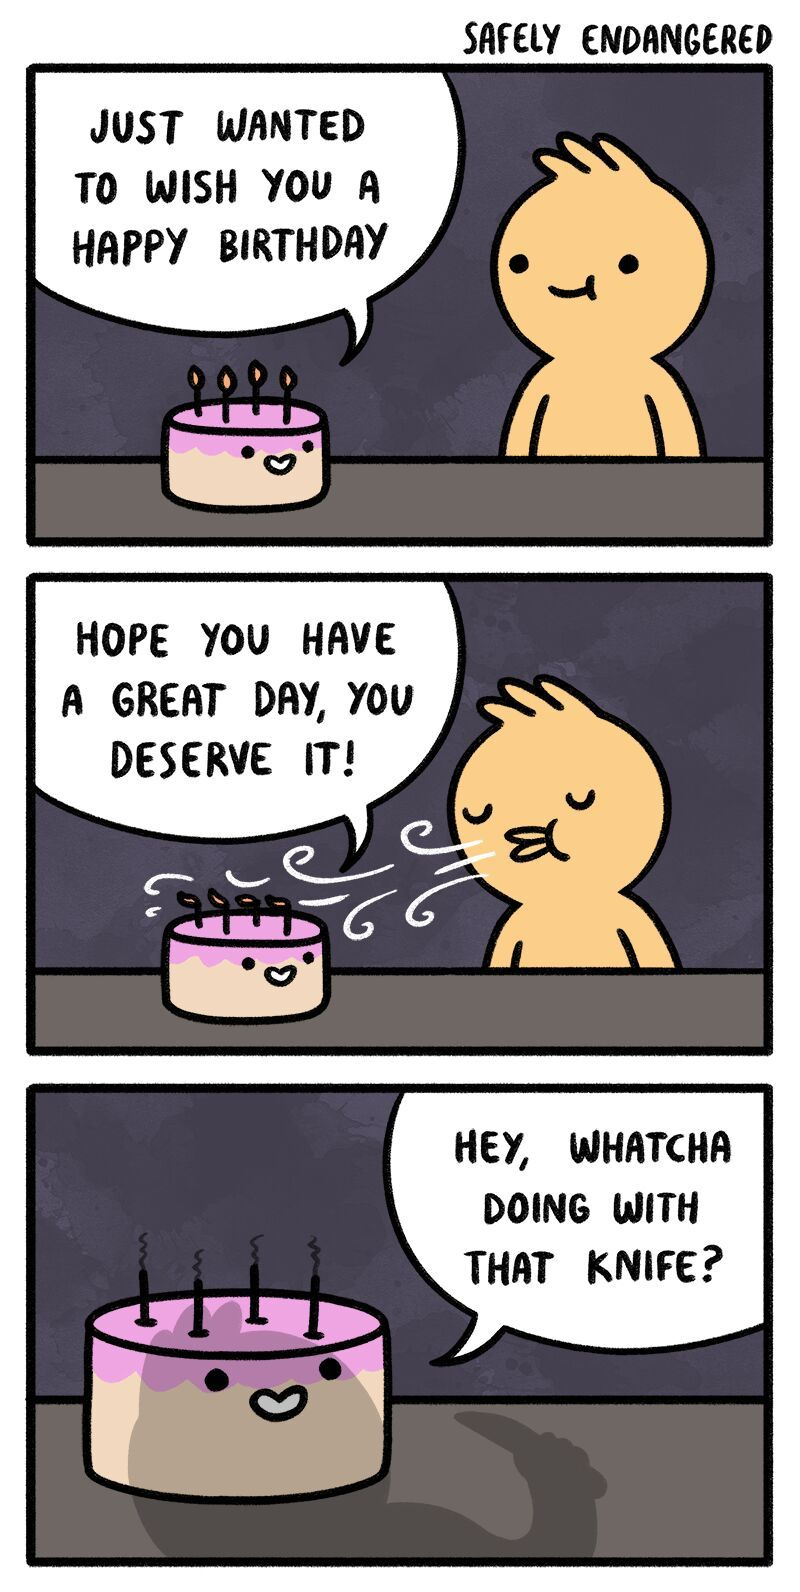 he's gonna murder the cake